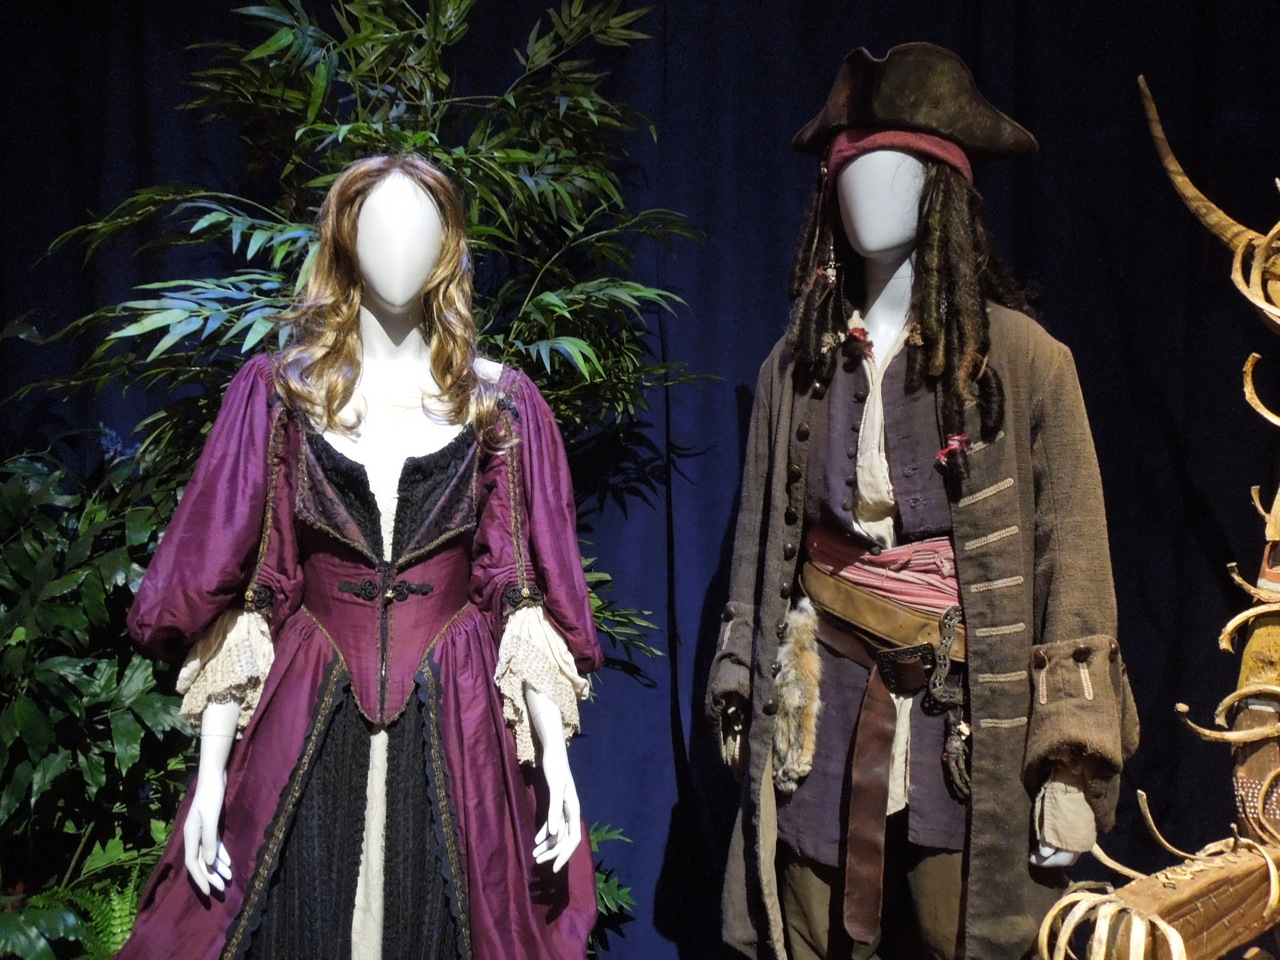 http://1.bp.blogspot.com/-rHQPvE_zccE/UICHANzn0uI/AAAAAAAA2c8/xBs8havI3c4/s1600/Pirates+Caribbean+movie+costumes.jpg